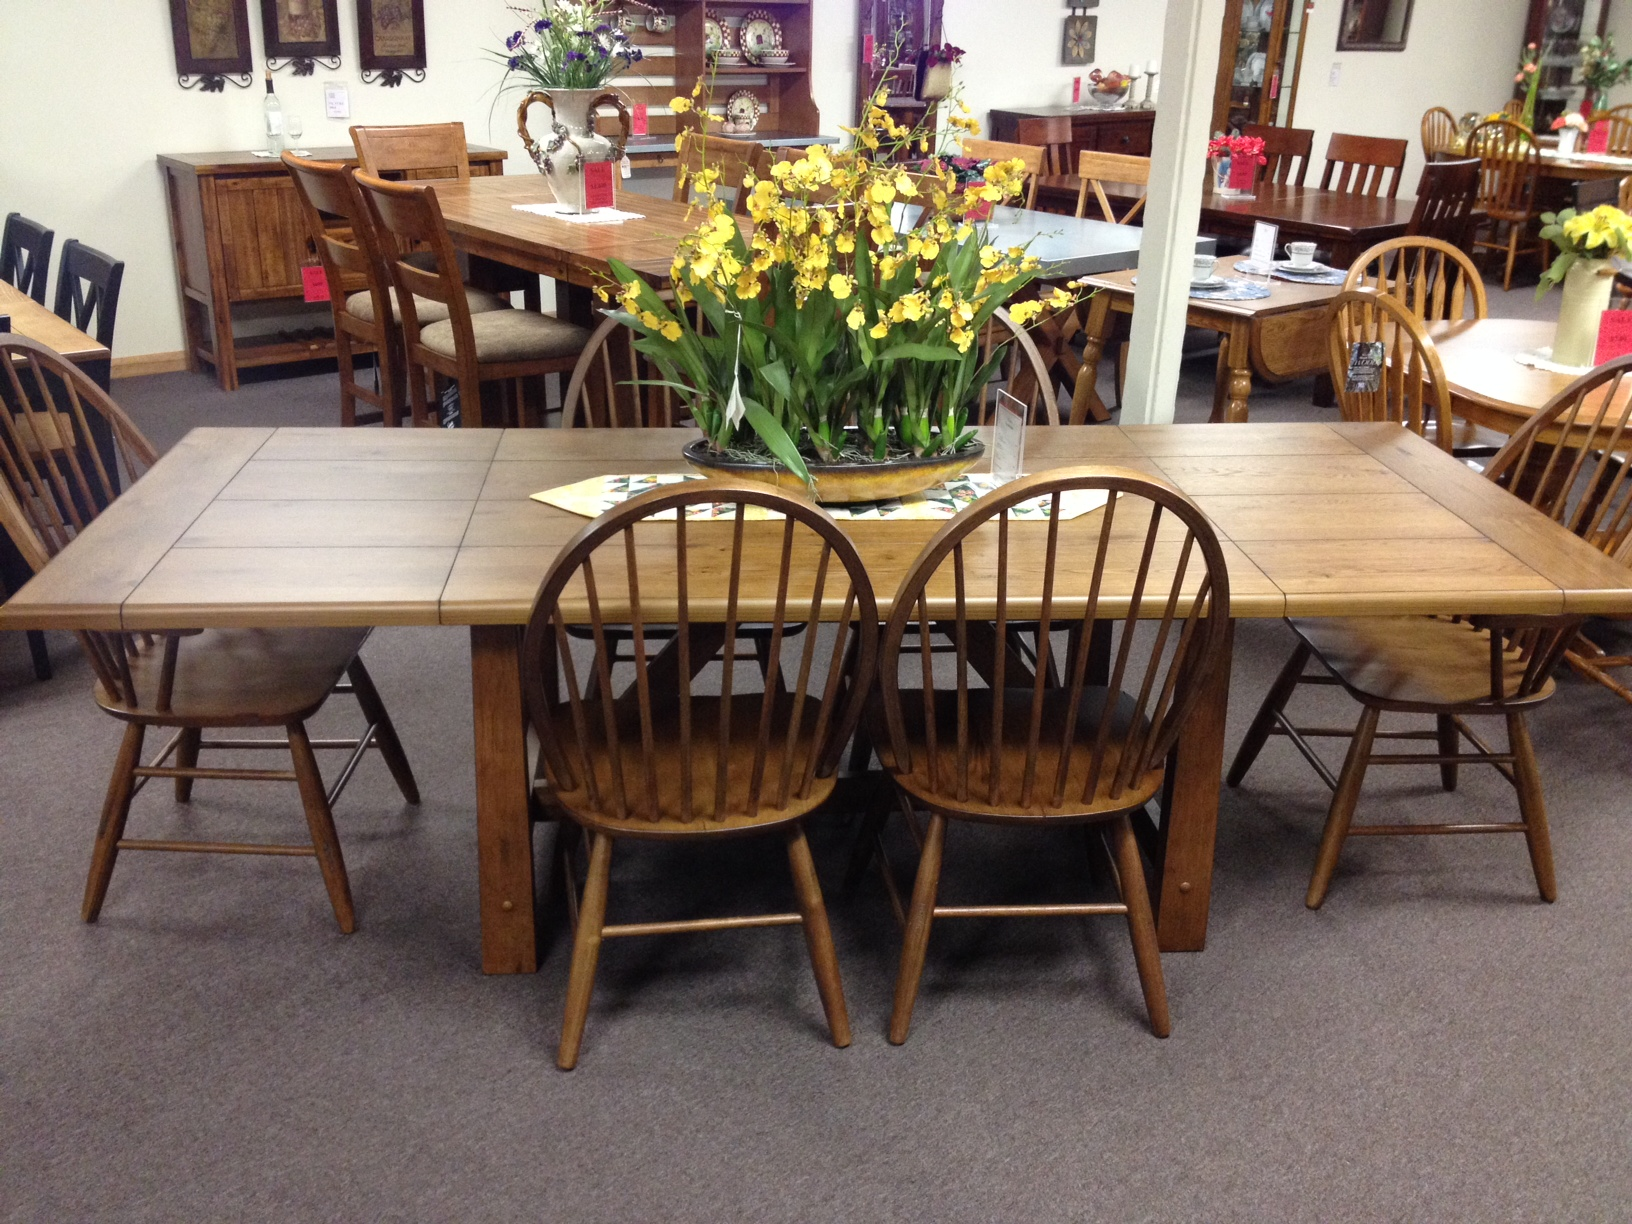 Allmans Furniture Battle Creek Mi Mls 16035393 5101 Walnut Ridge Battle Creek Mi 49017 Beds